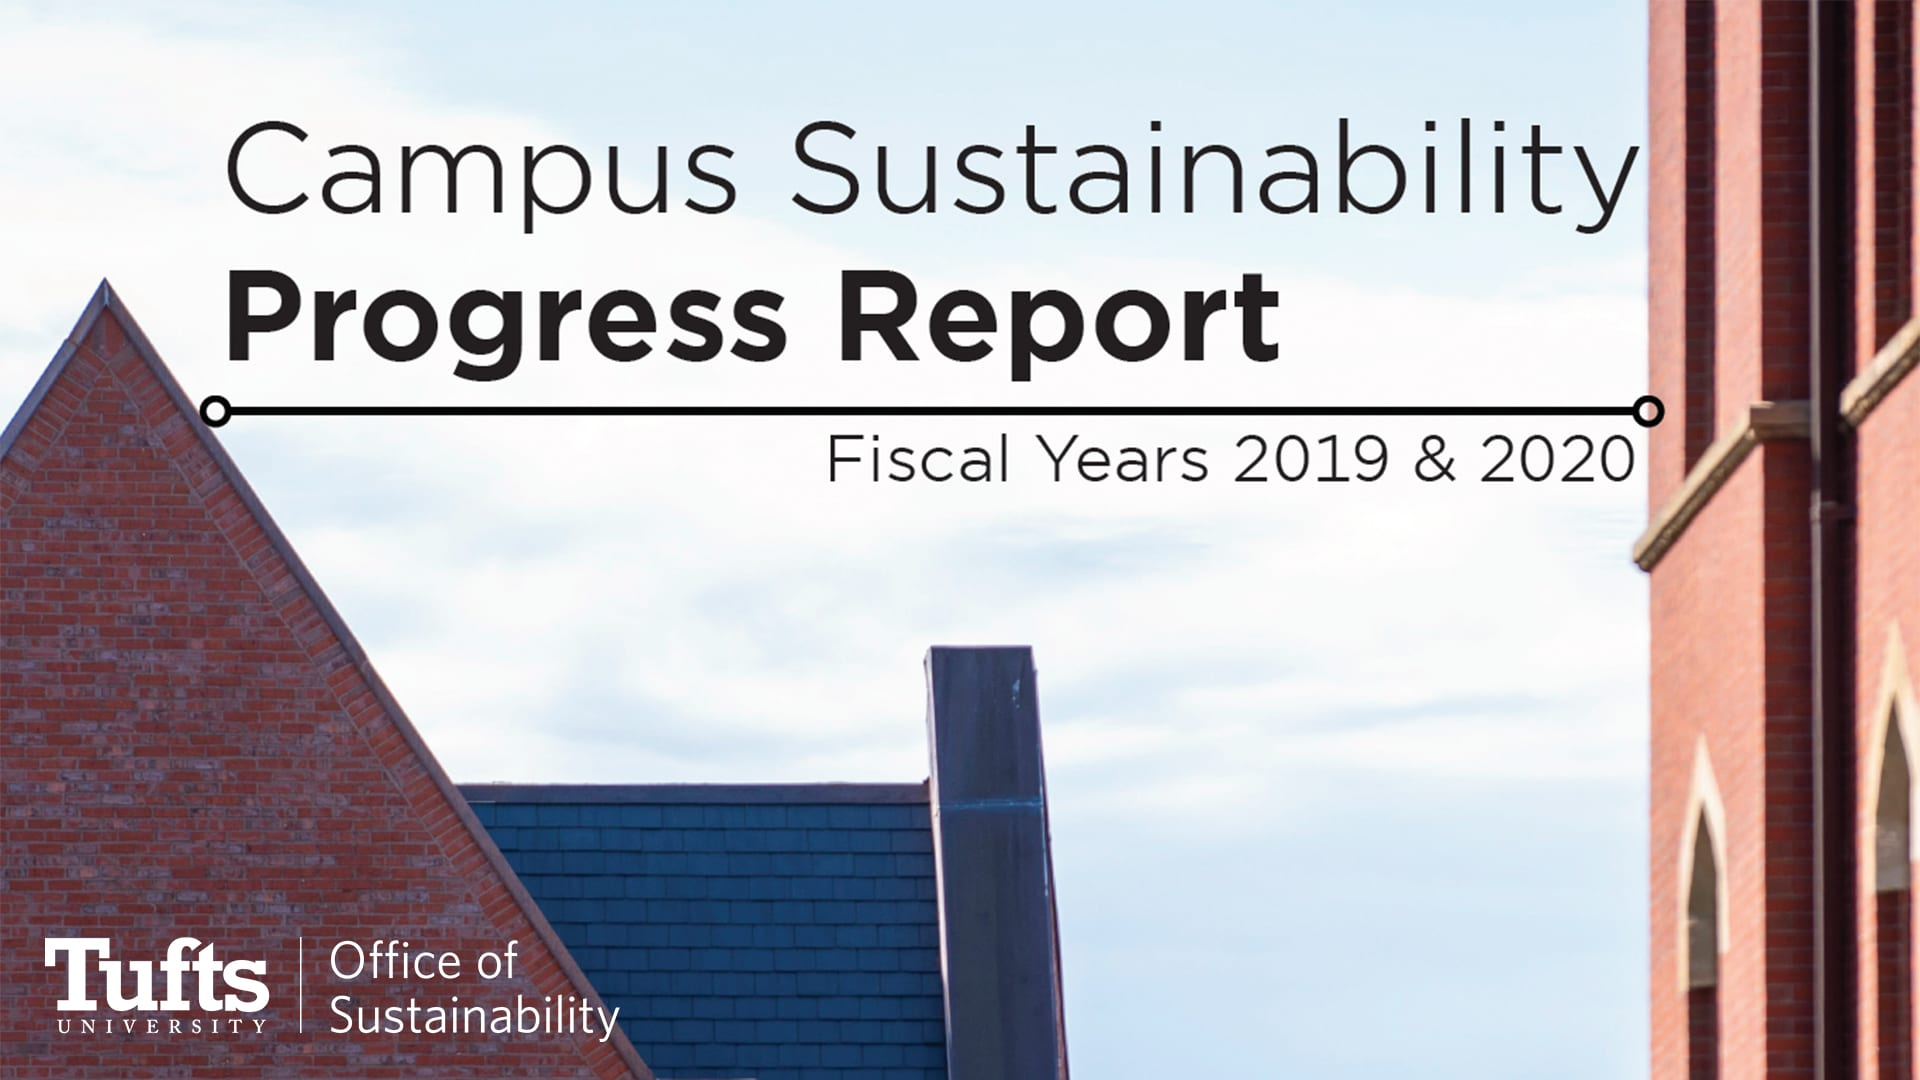 FY 2019-20 Campus Sustainability Report Now Released